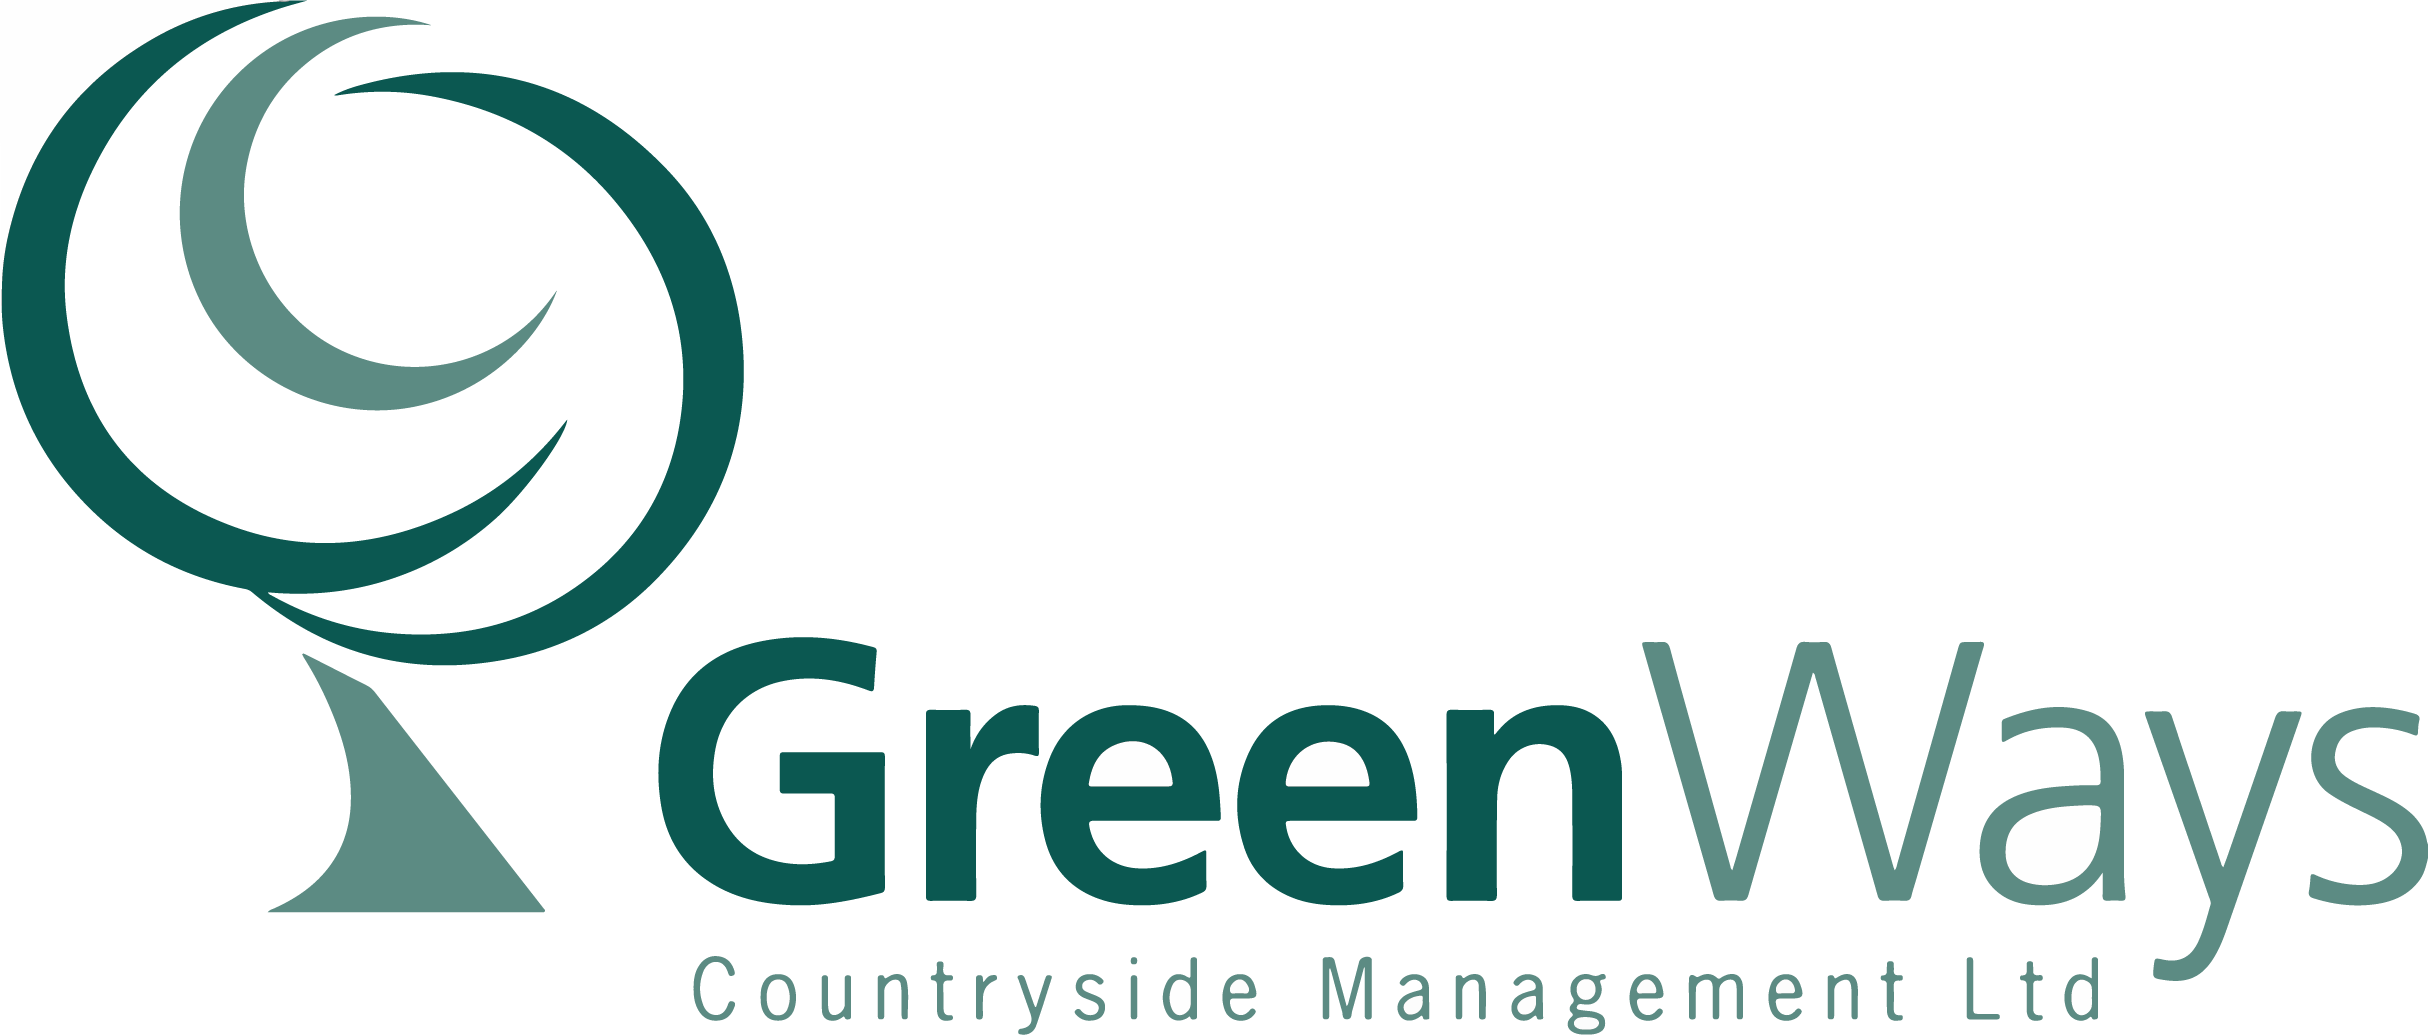 Green Ways Countryside Management Ltd Logo